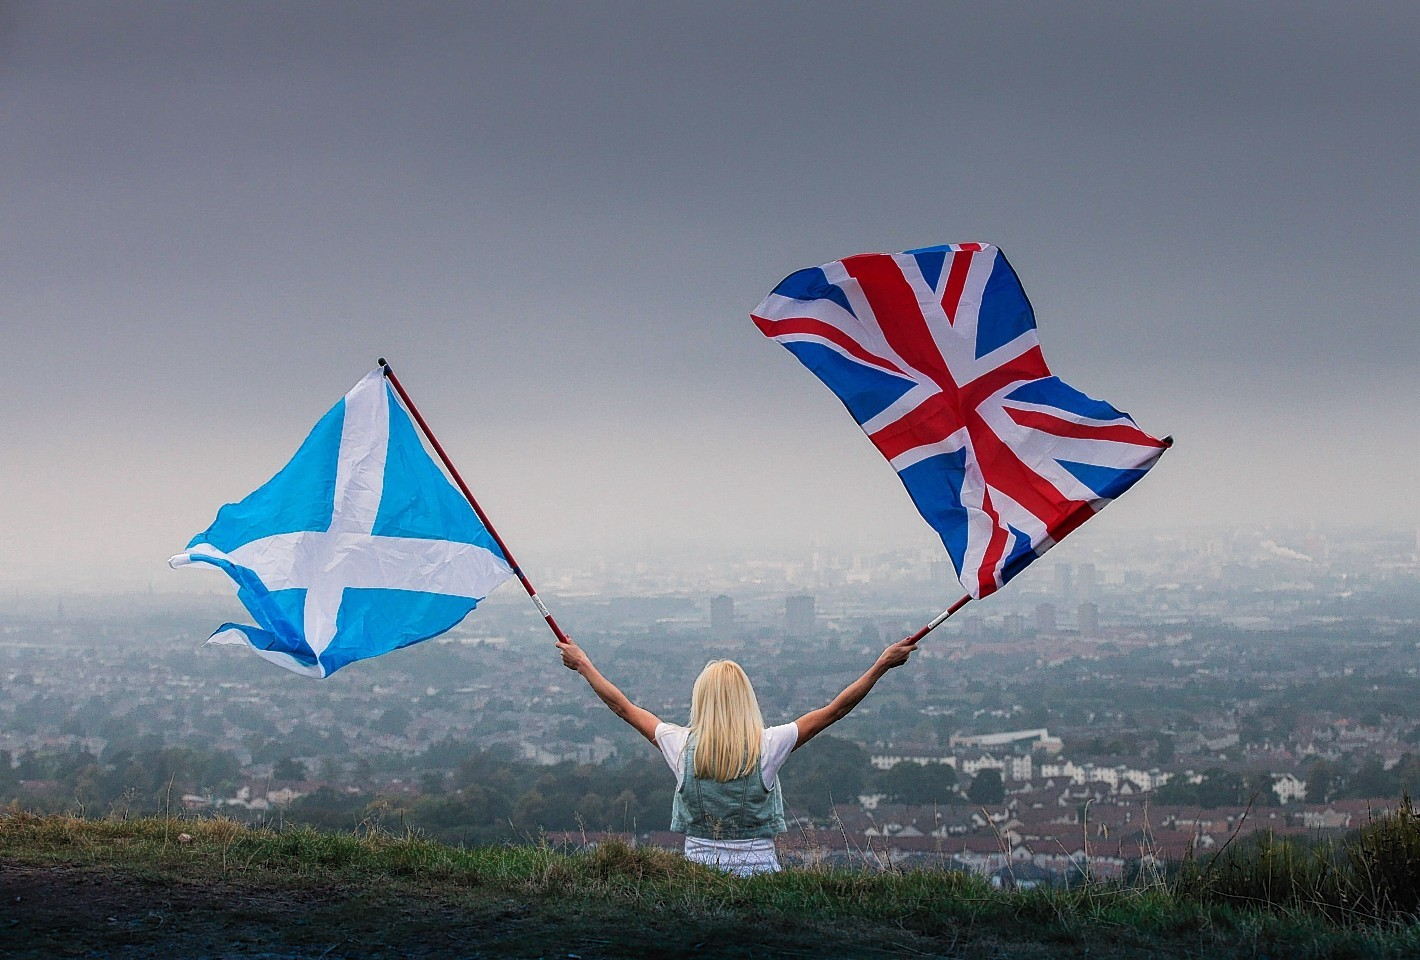 Scotland had an independence referendum in 2014